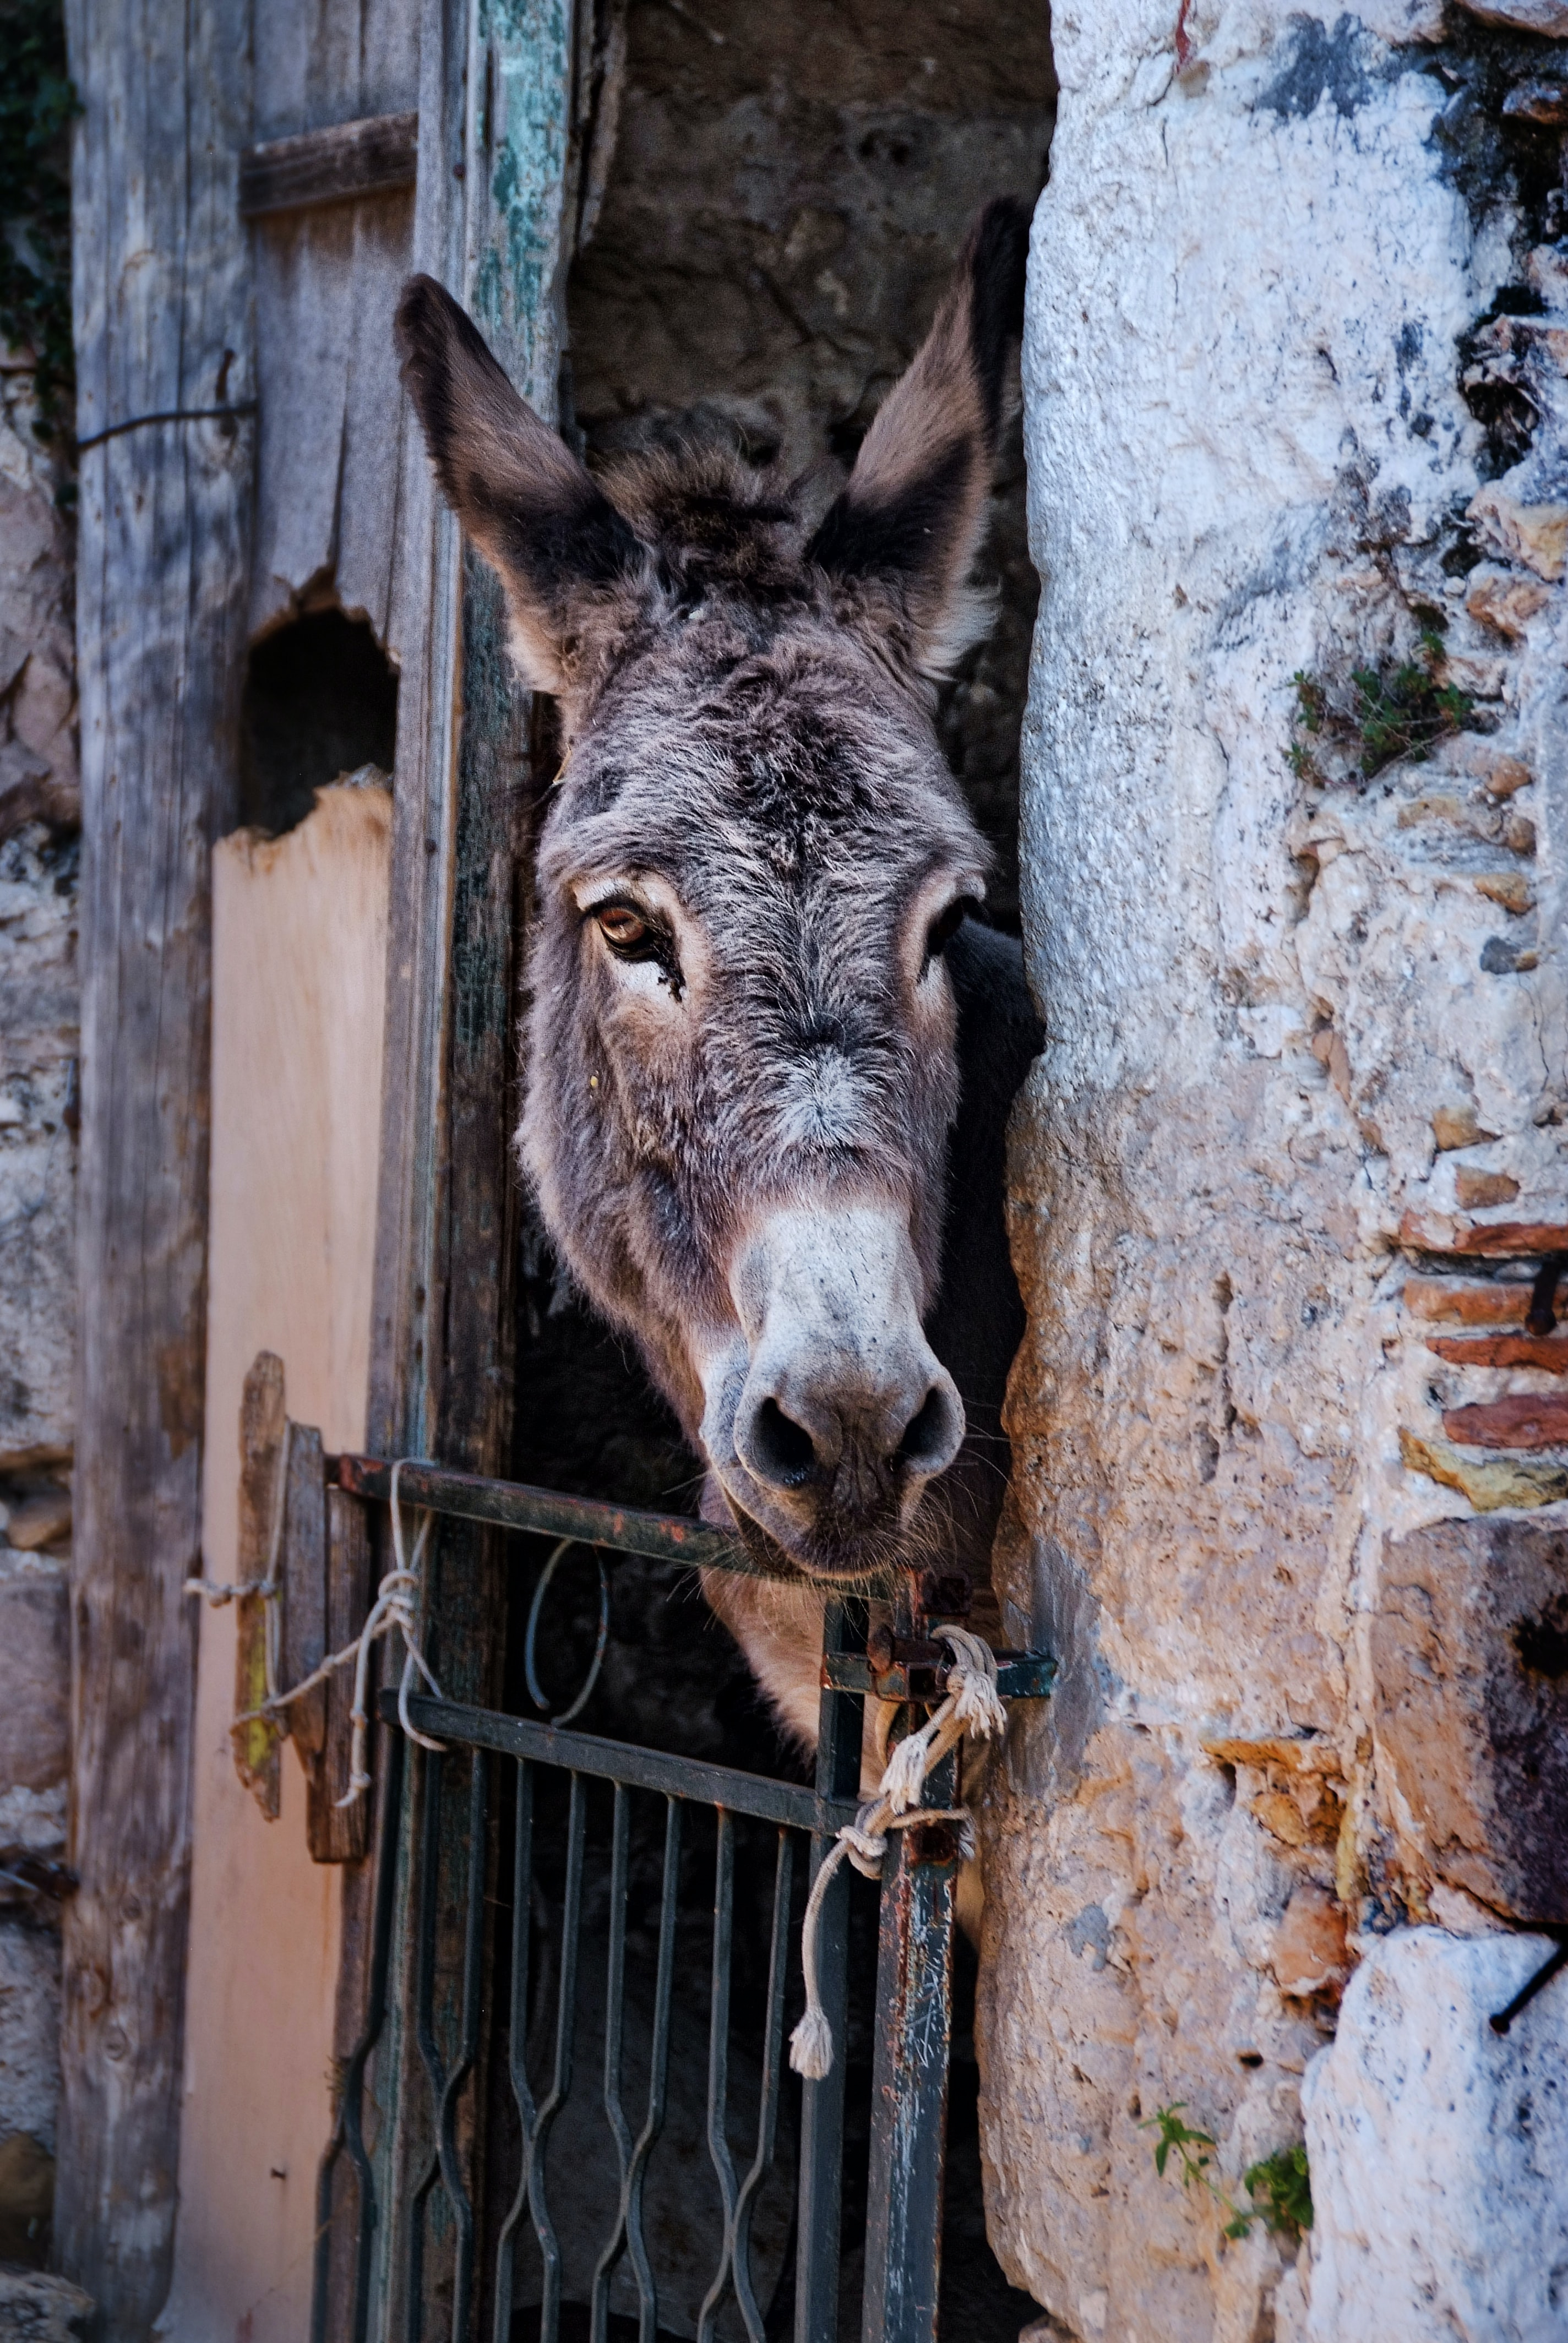 gray donkey inside gray concrete cage